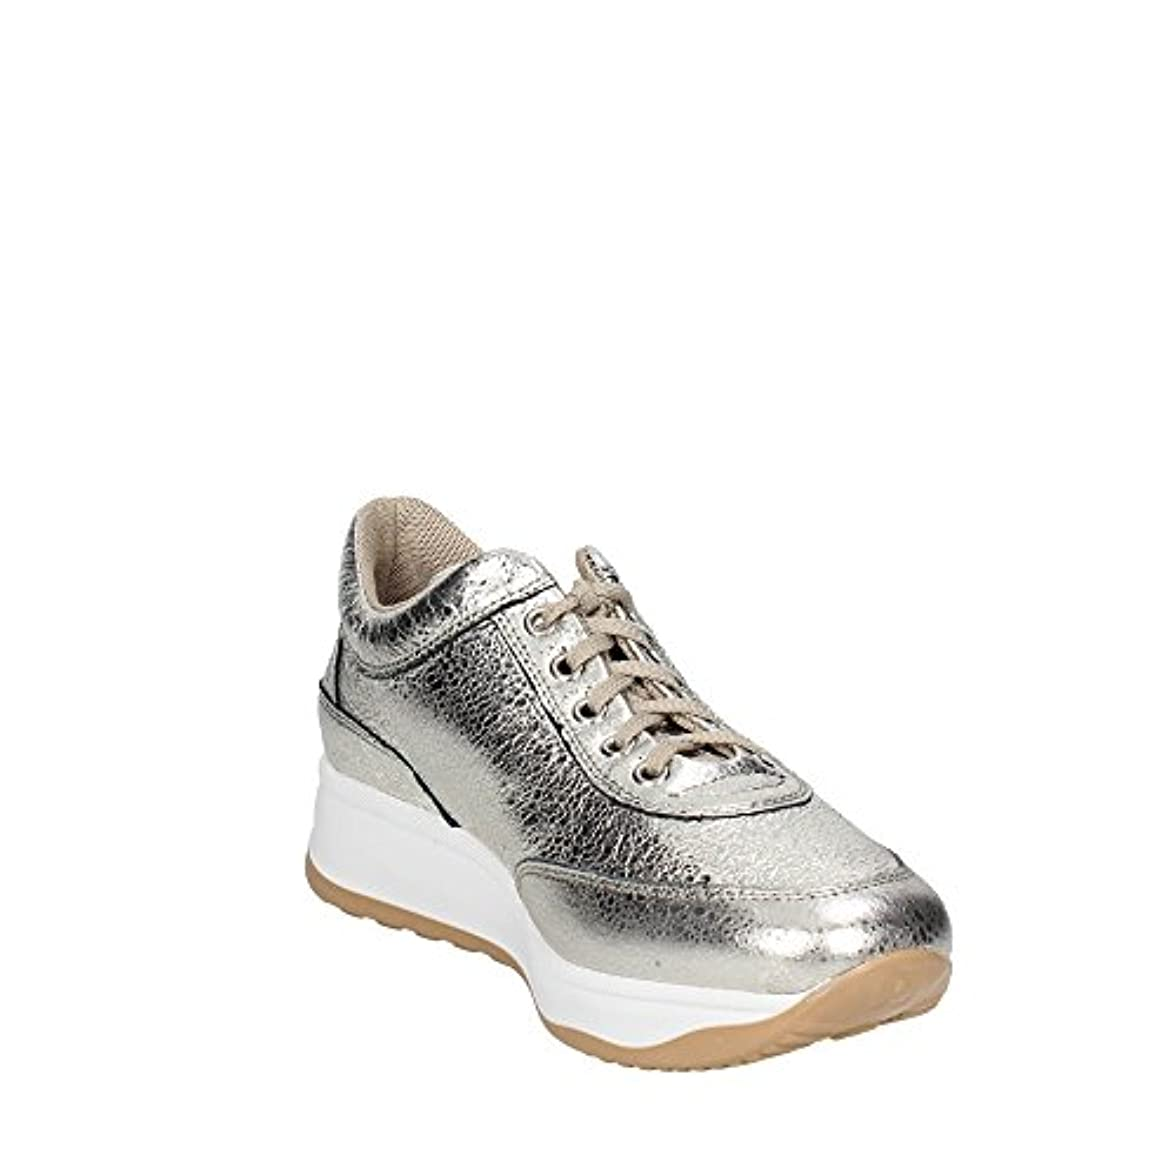 Agile By Rucoline 1304 12 Sneakers Donna